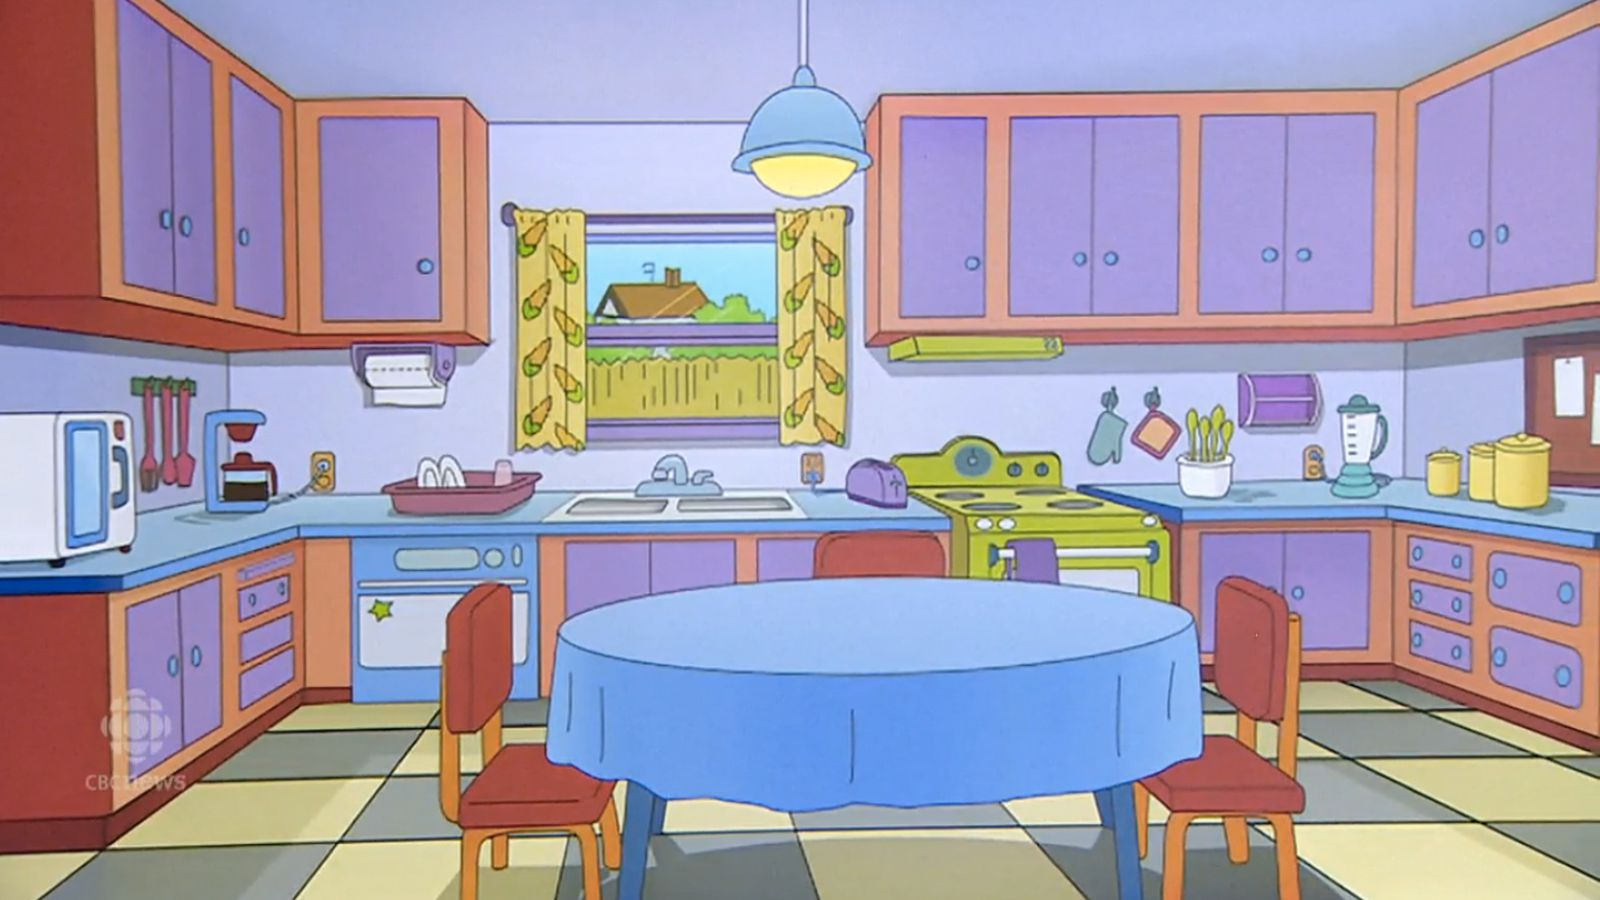 Brilliant Simpsons Fans Renovate Kitchen To Look Just